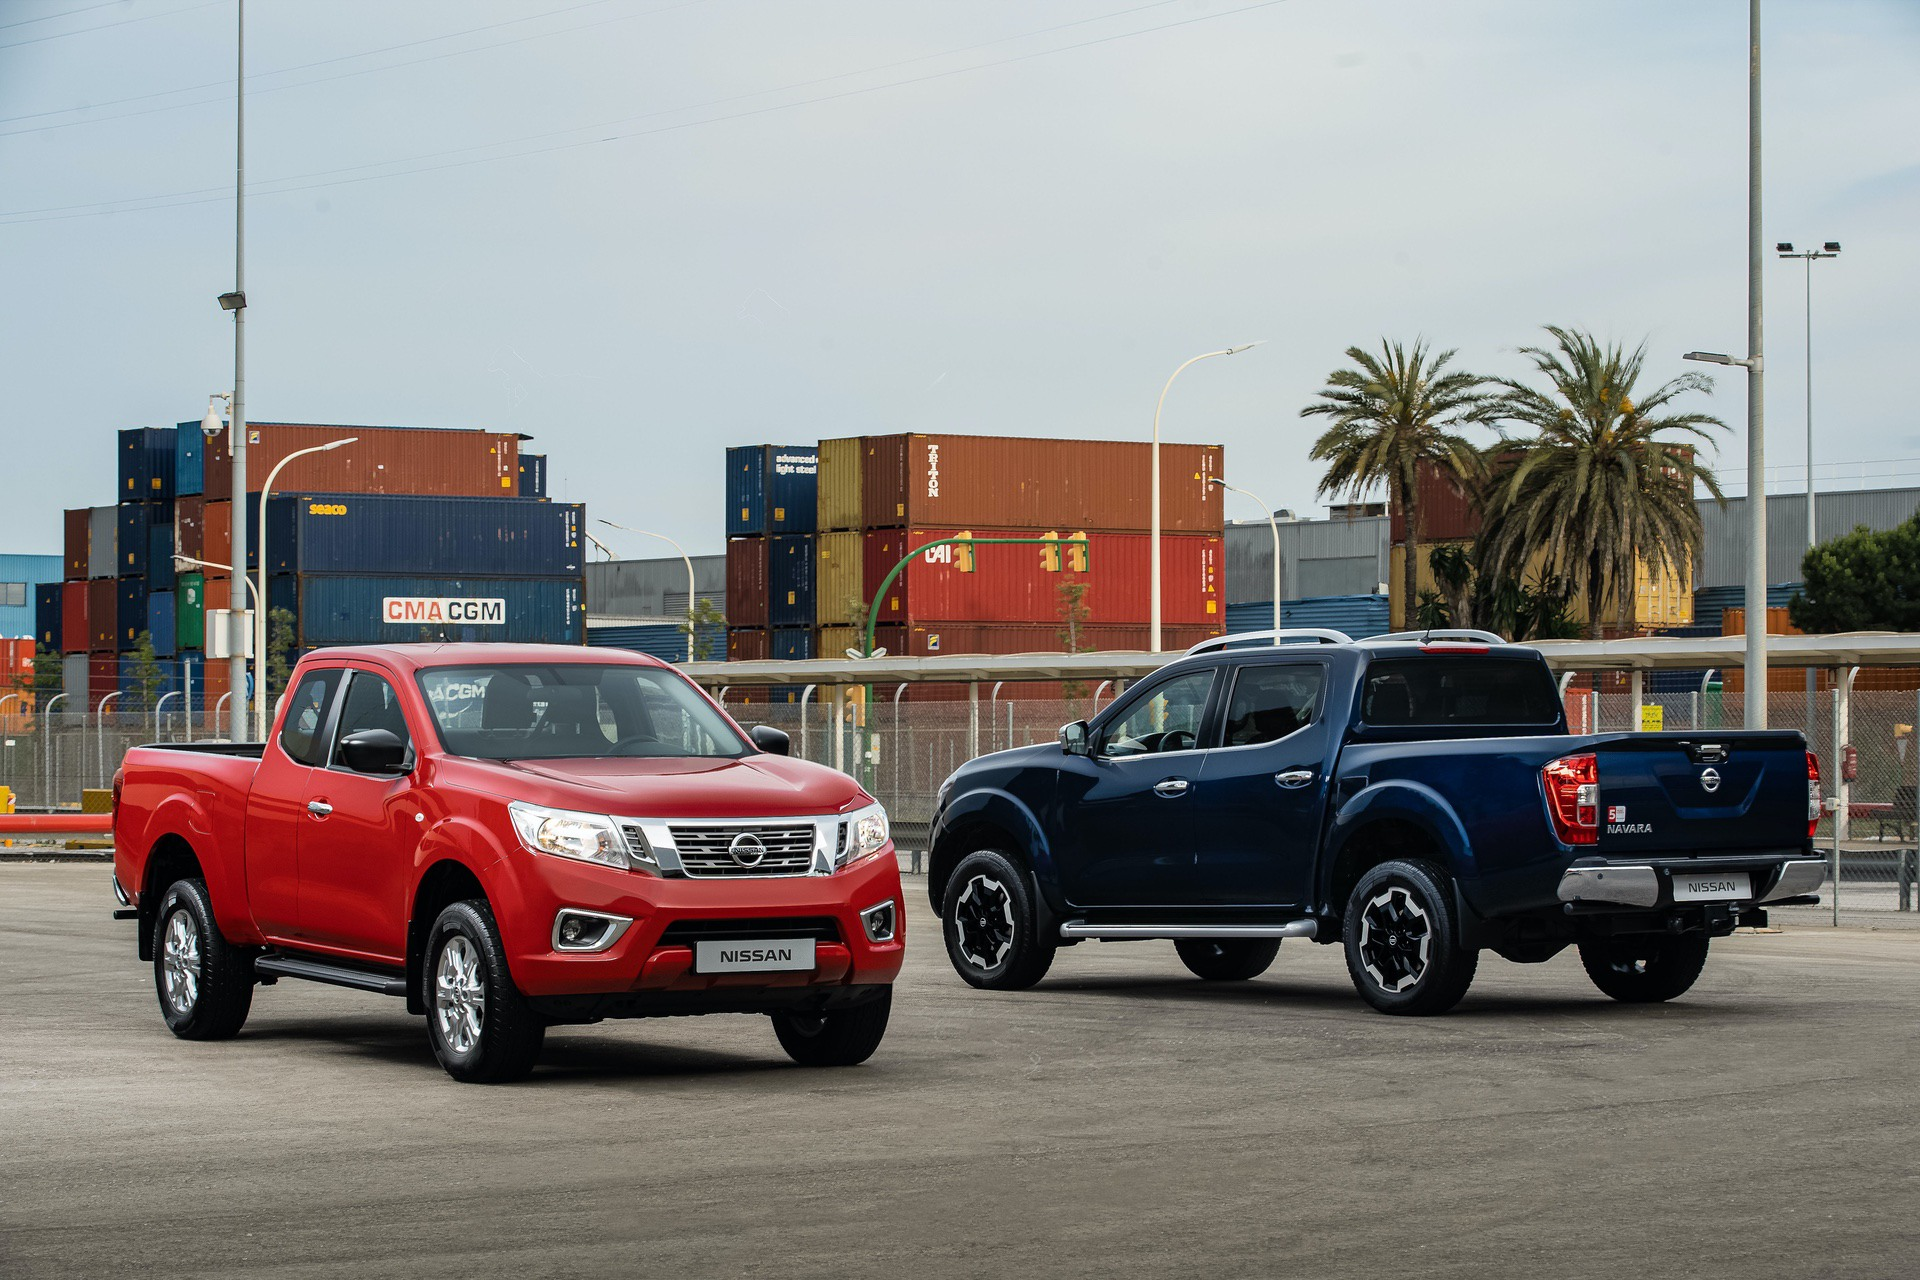 Nissan-Navara-King-Cab-Red-and-Double-Cab-Blue